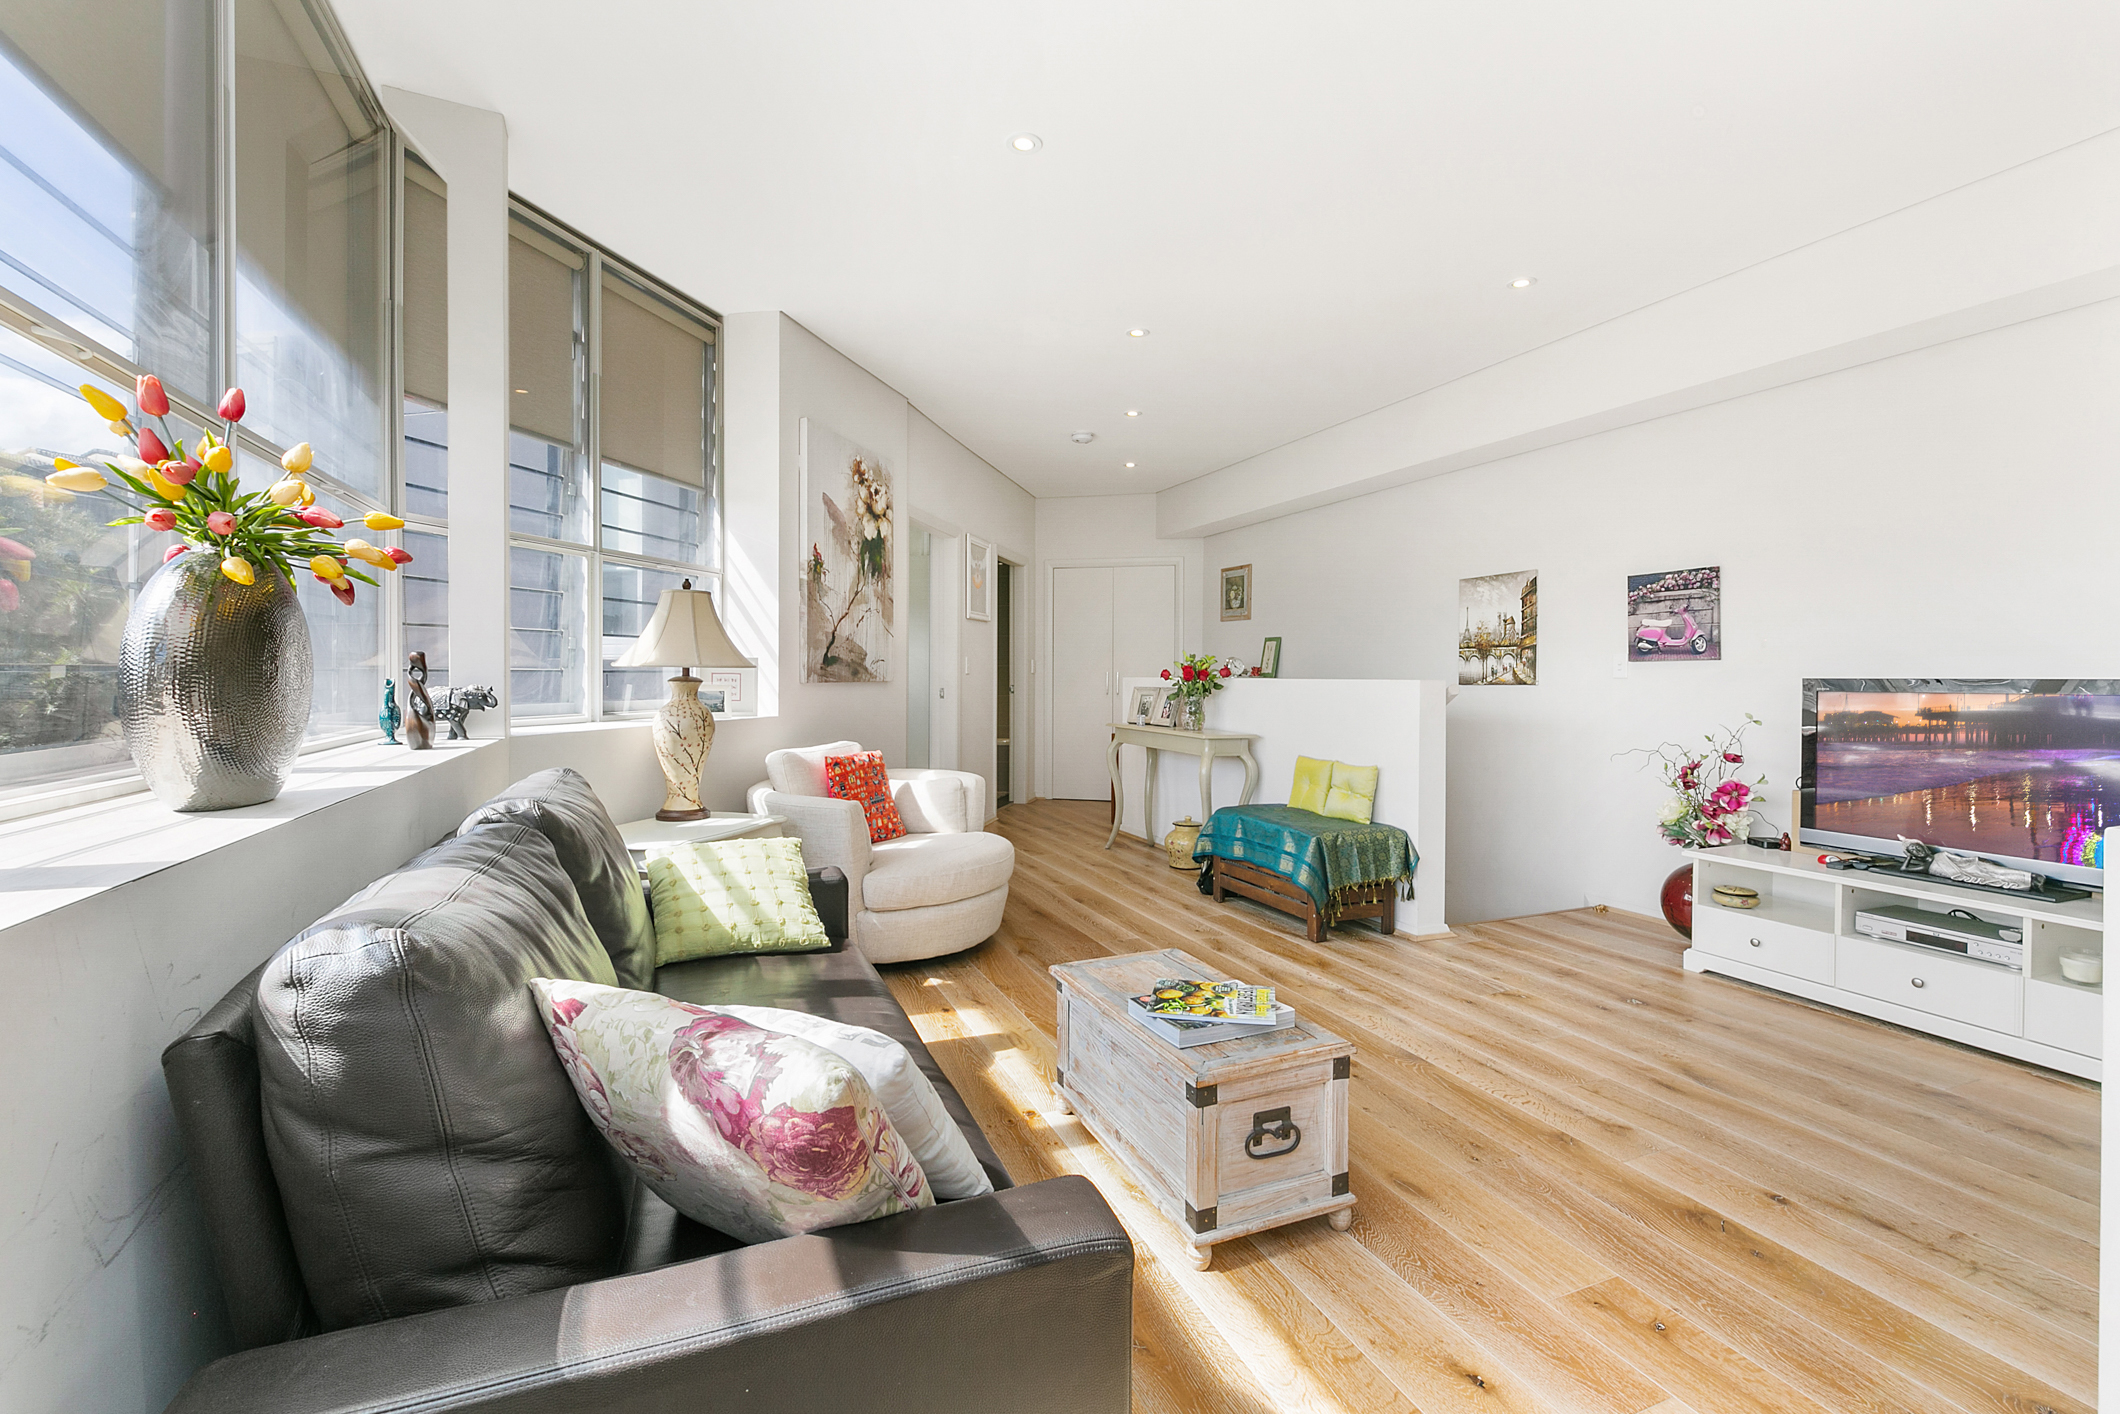 19/54 Blackwall Point Road, Chiswick